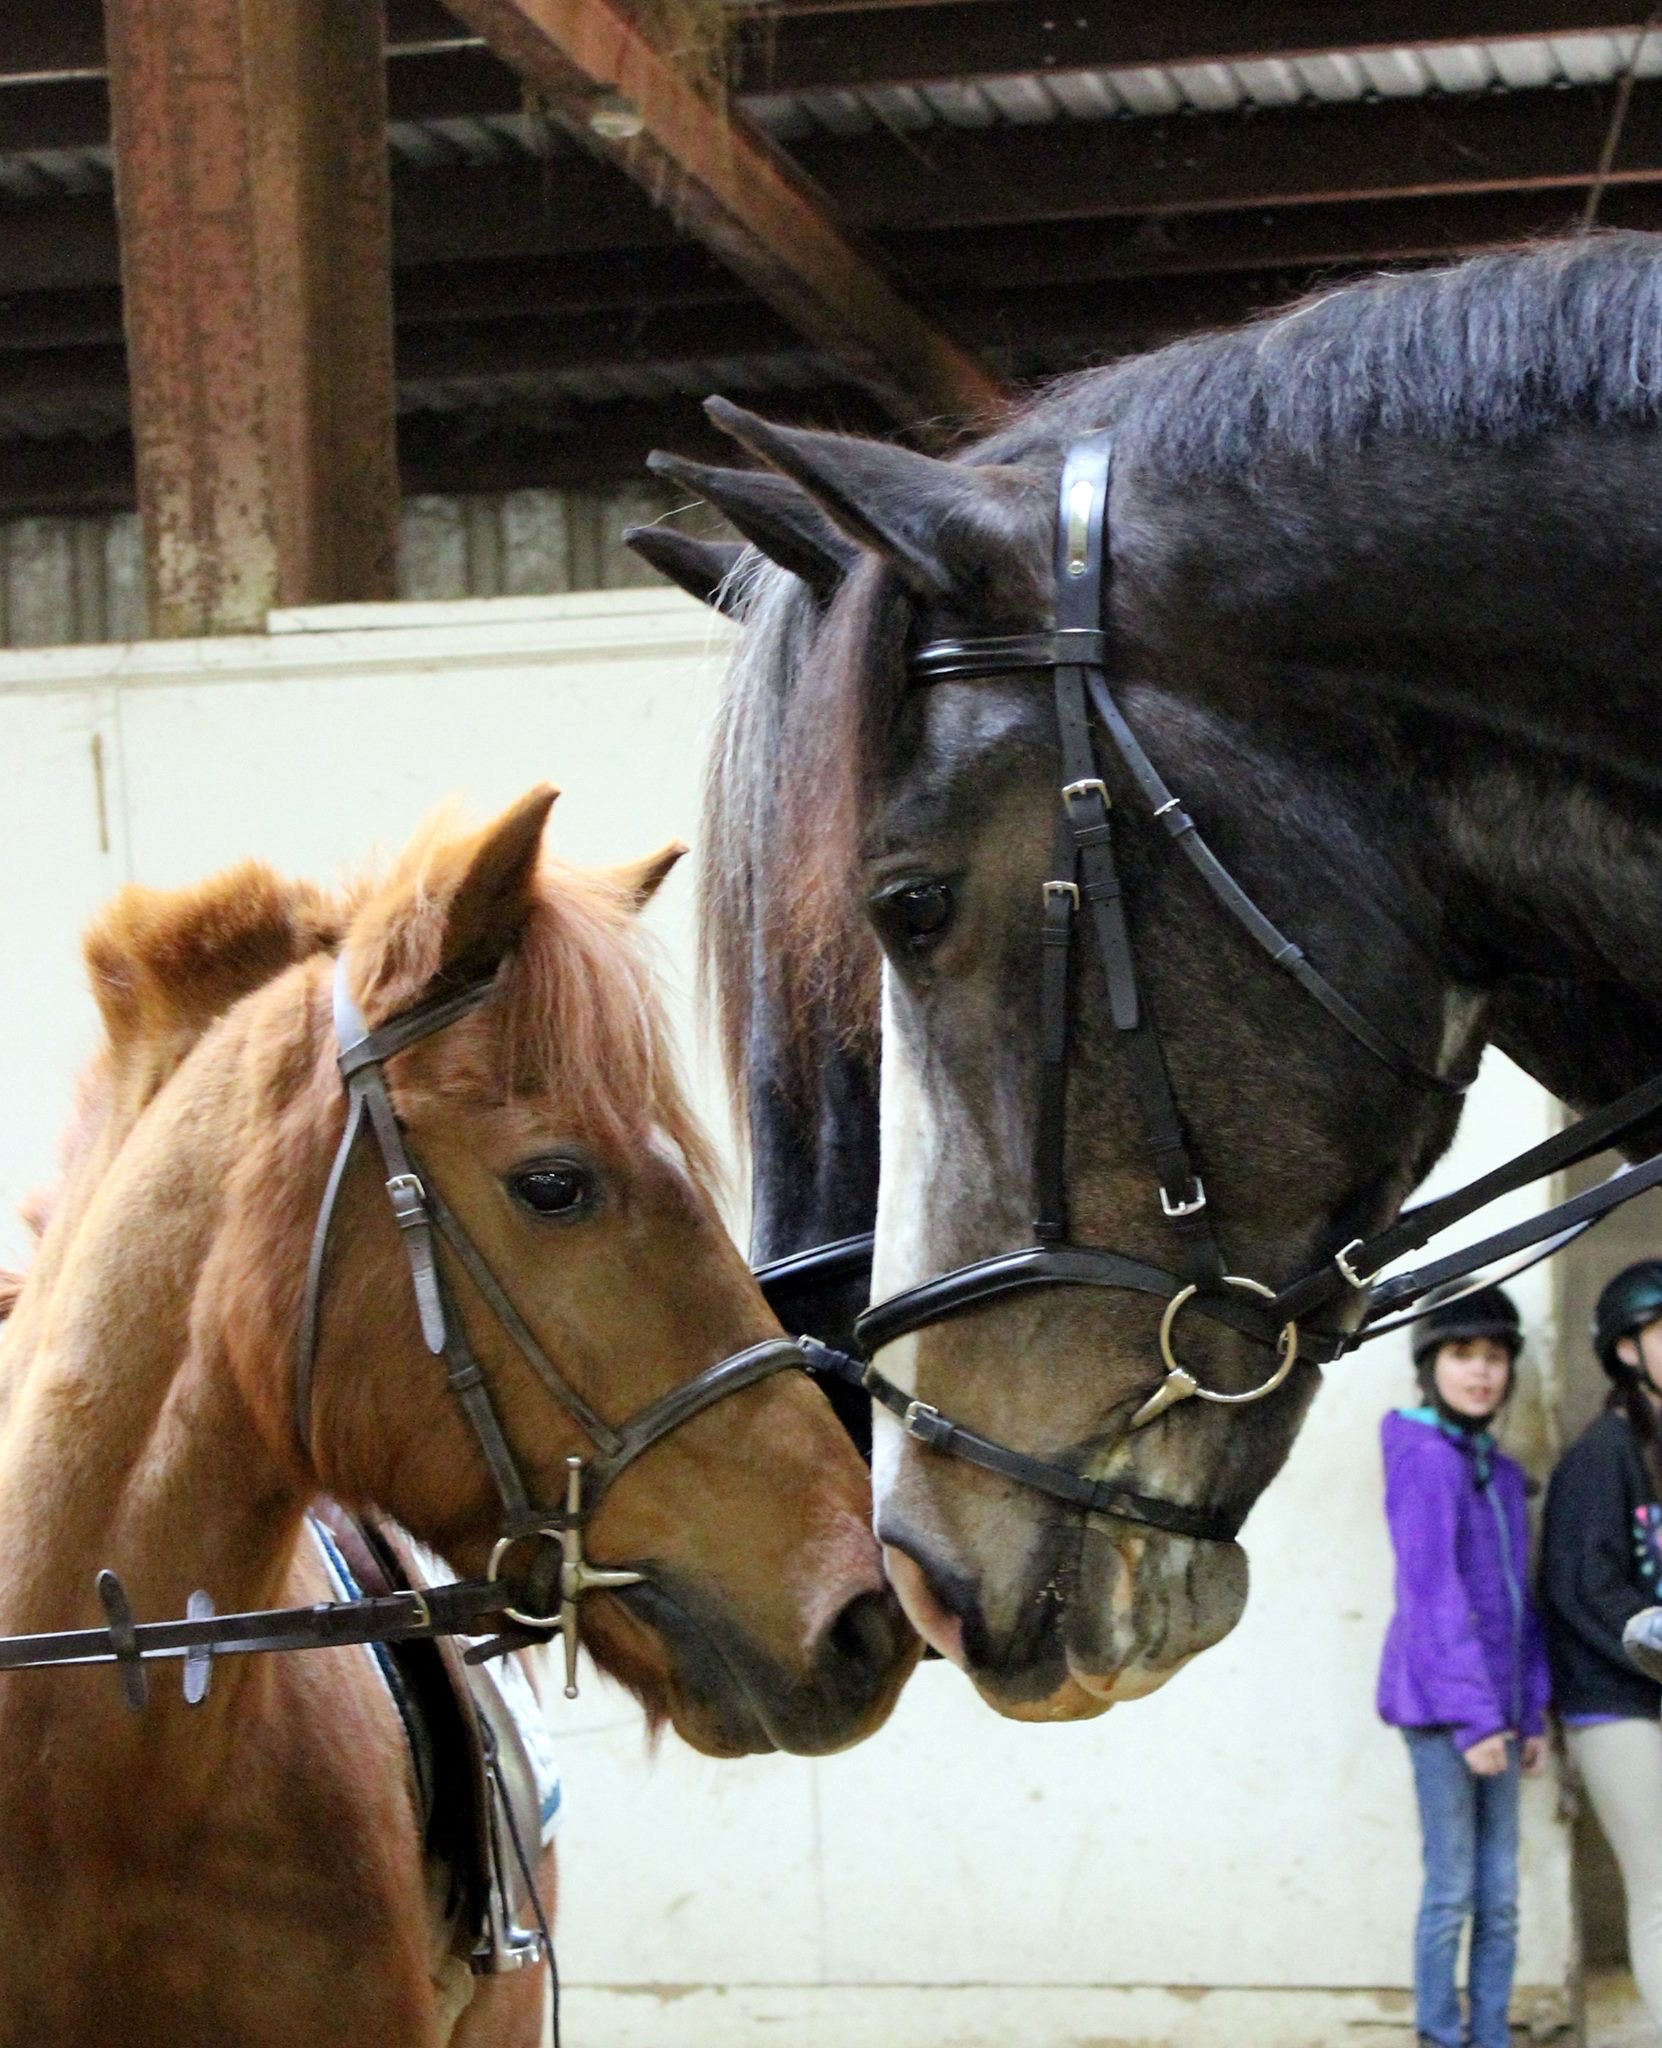 A photo depicting two horses nudging heads